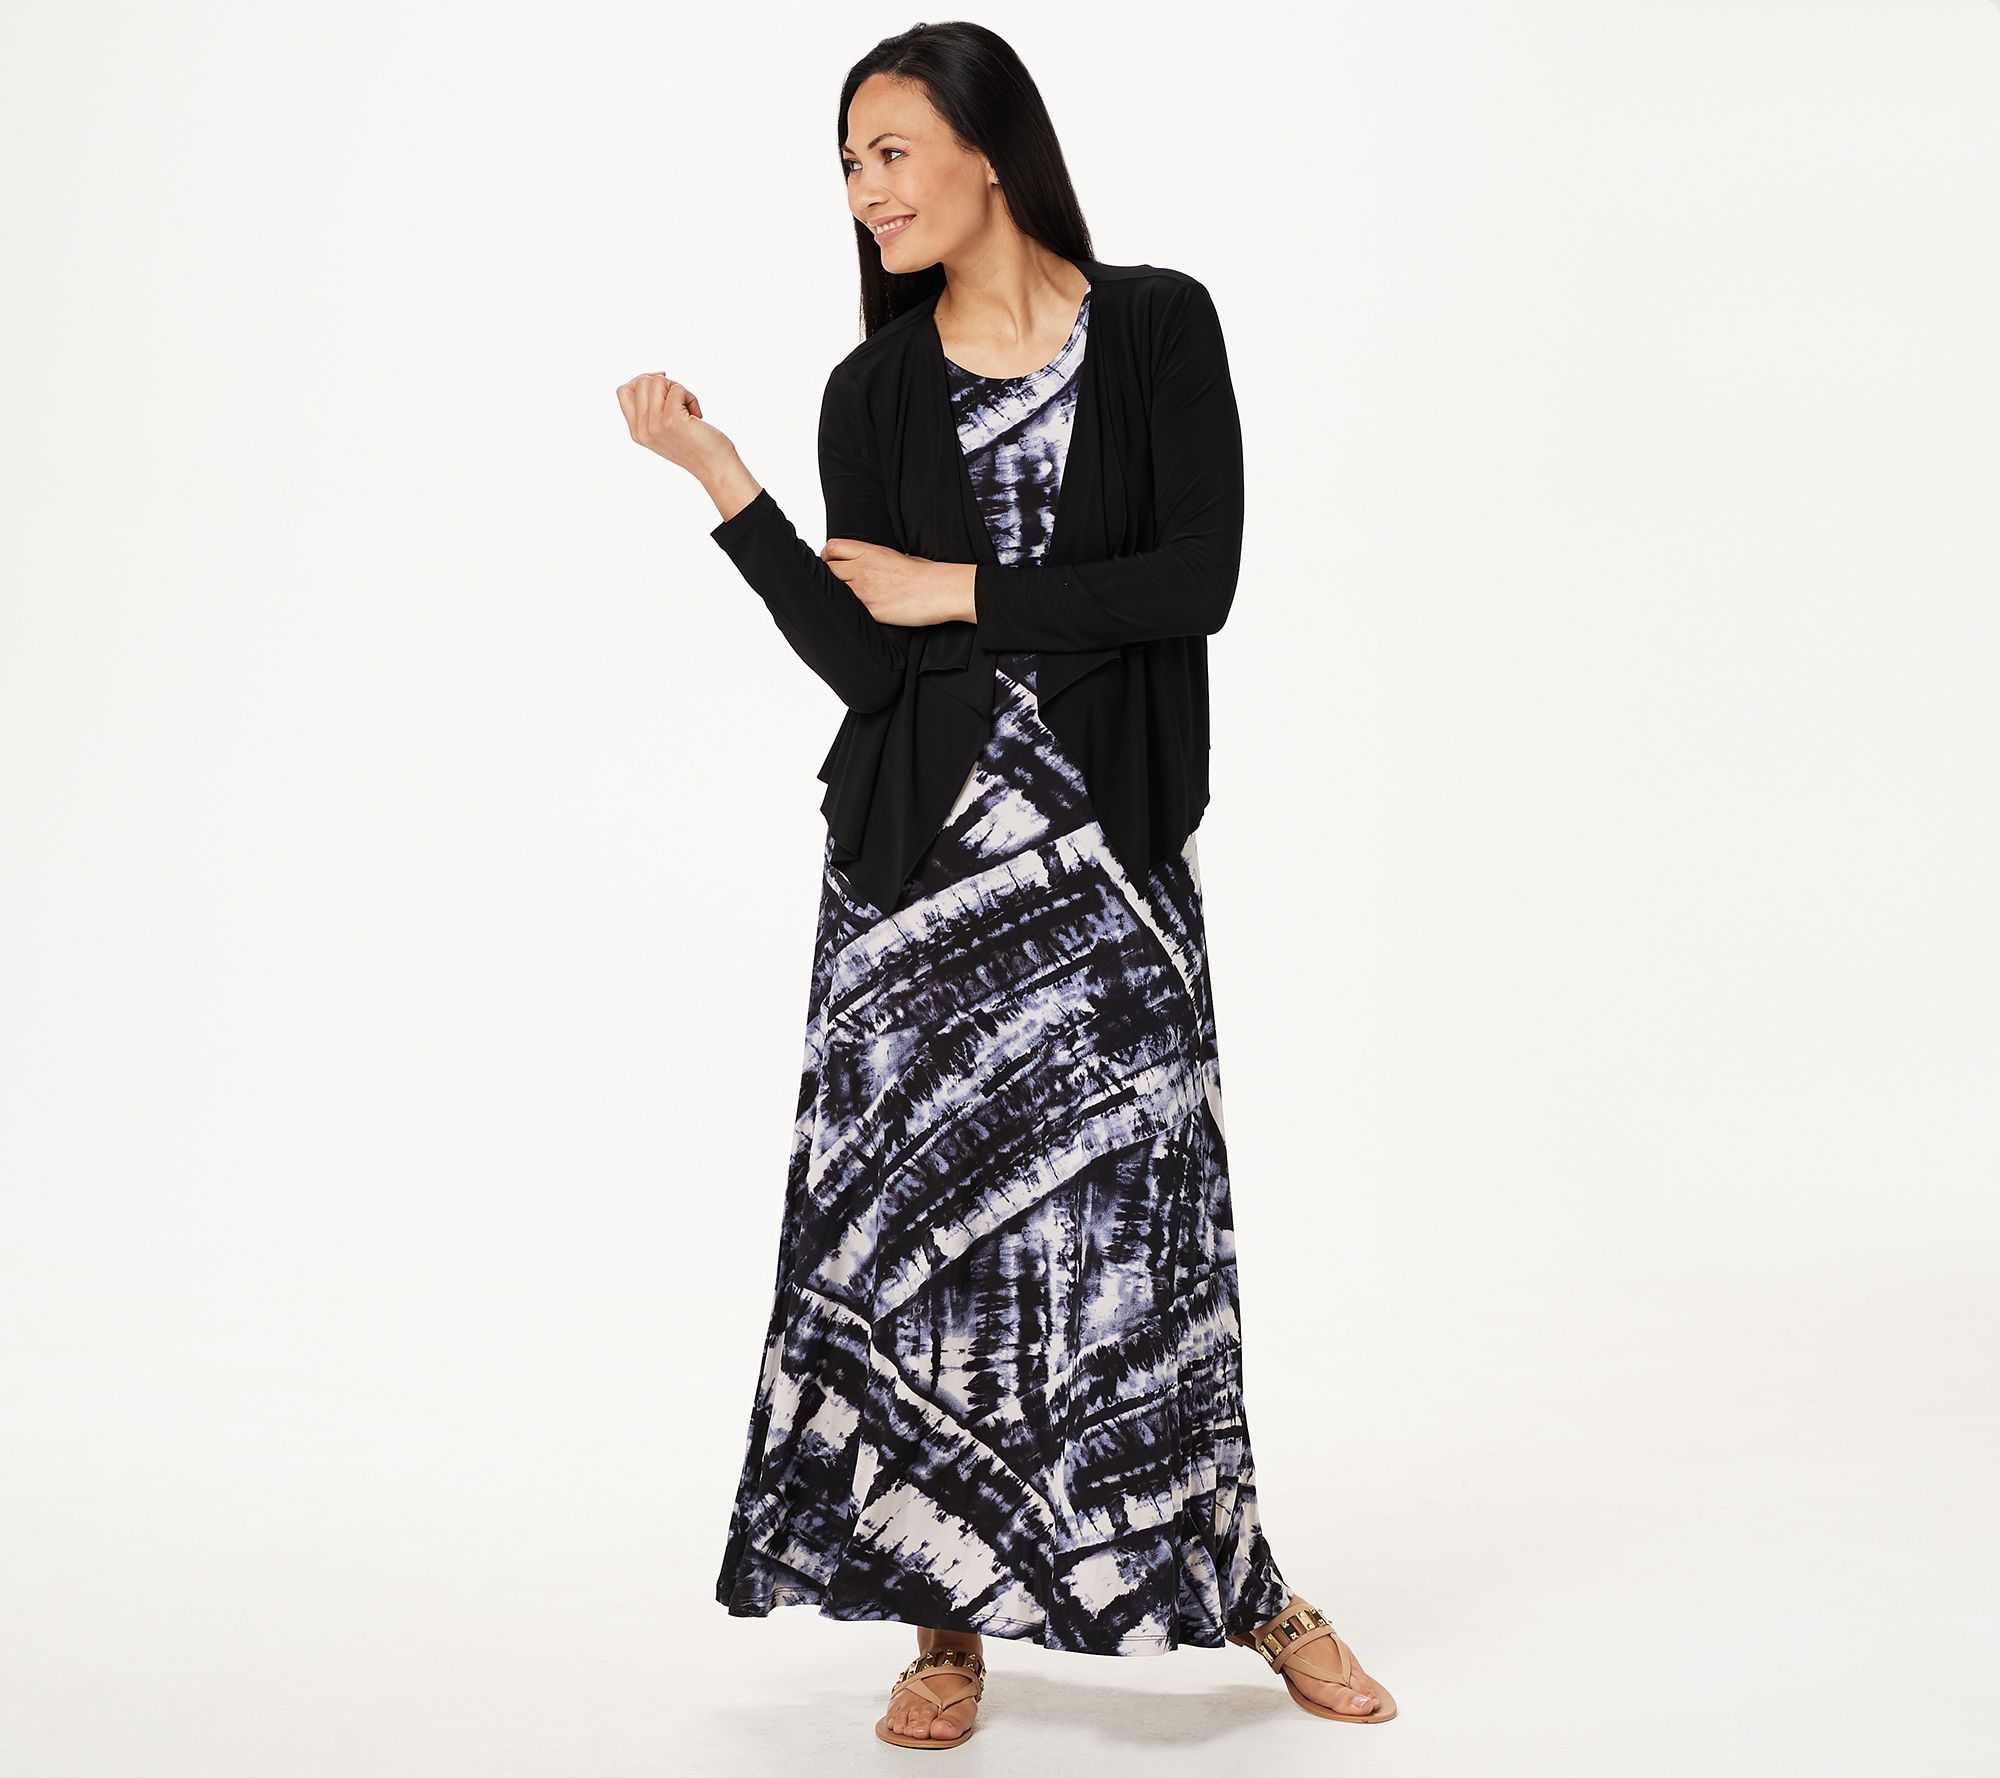 d7ff9c0f0c28 Attitudes by Renee Petite Printed Maxi Dress with Cardigan - Page 1 —  QVC.com